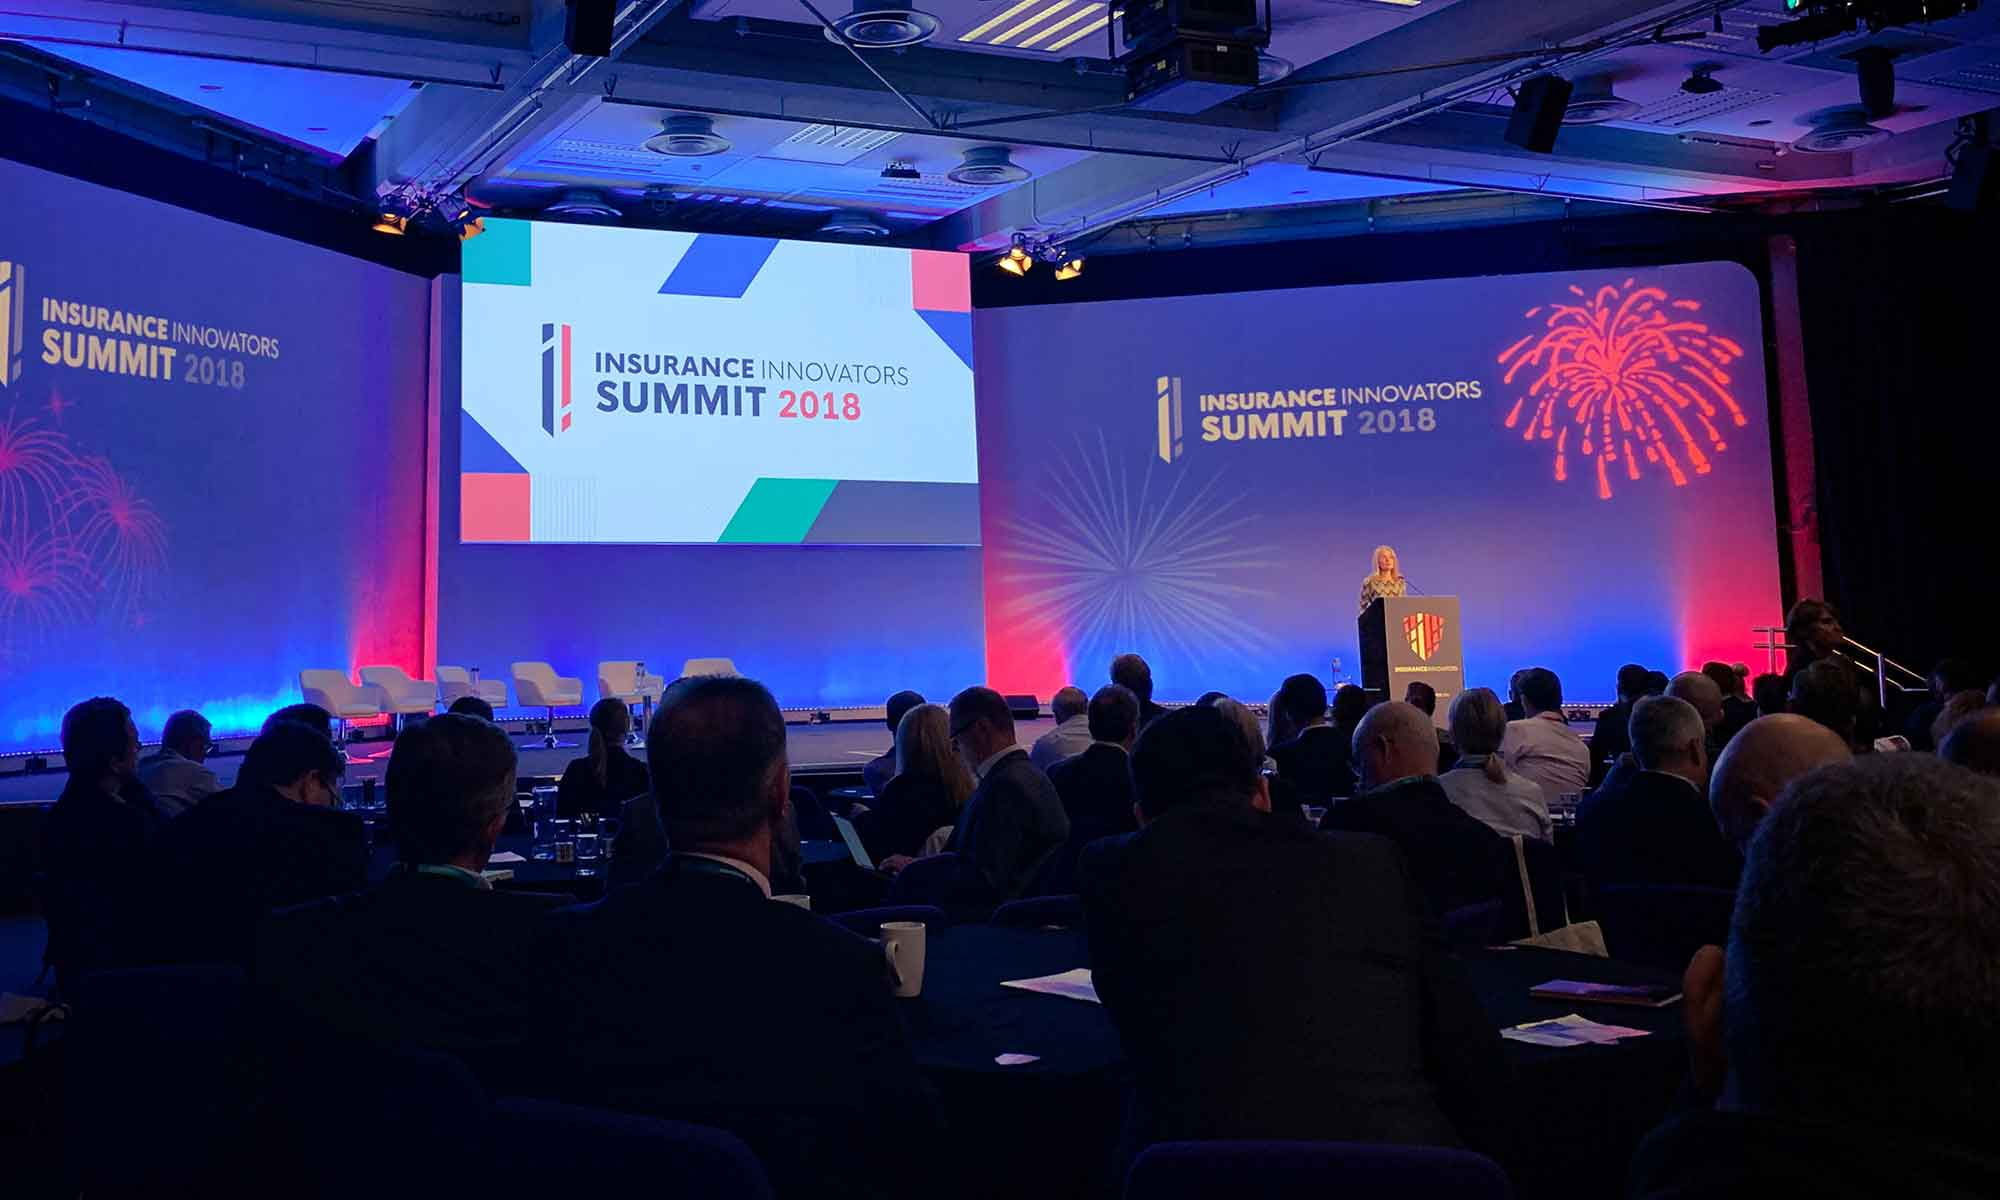 bsurance Insurance Innovators Summit 2018